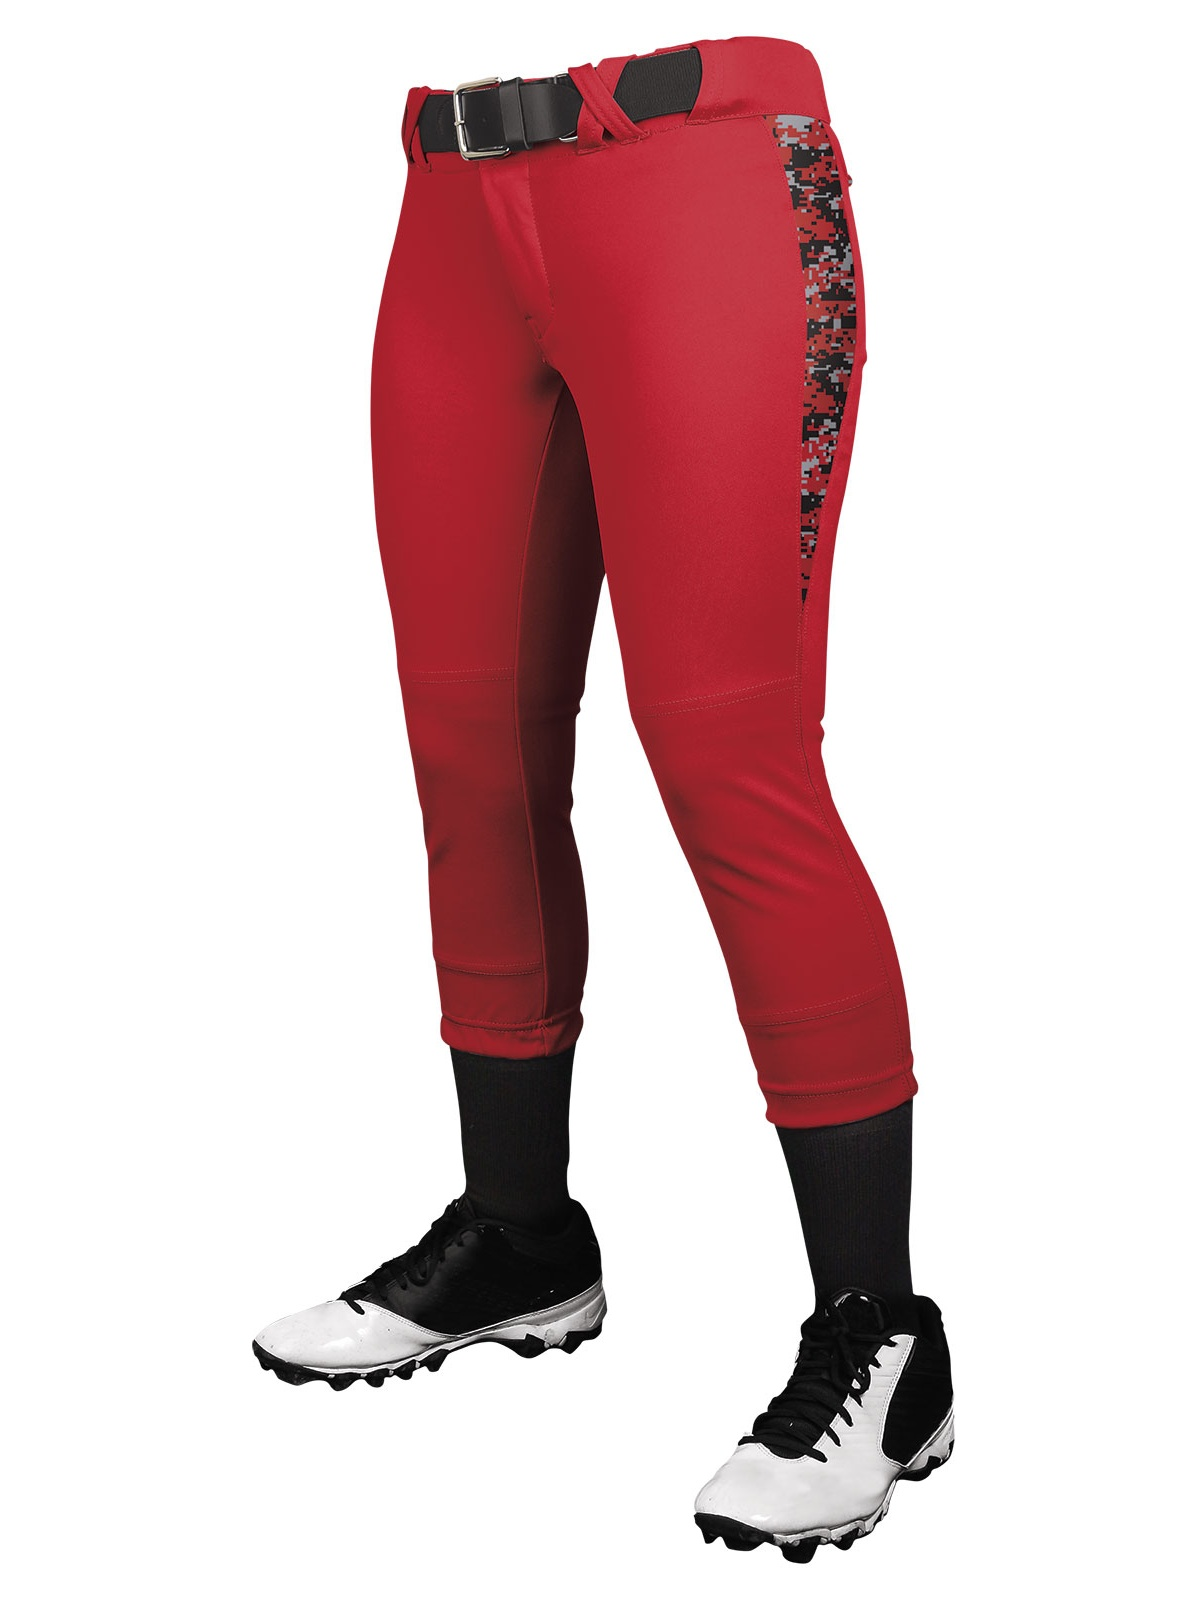 Champro Girls Digi Camo Low Rise Fastpitch Pants NEW! - Royal - X-Large